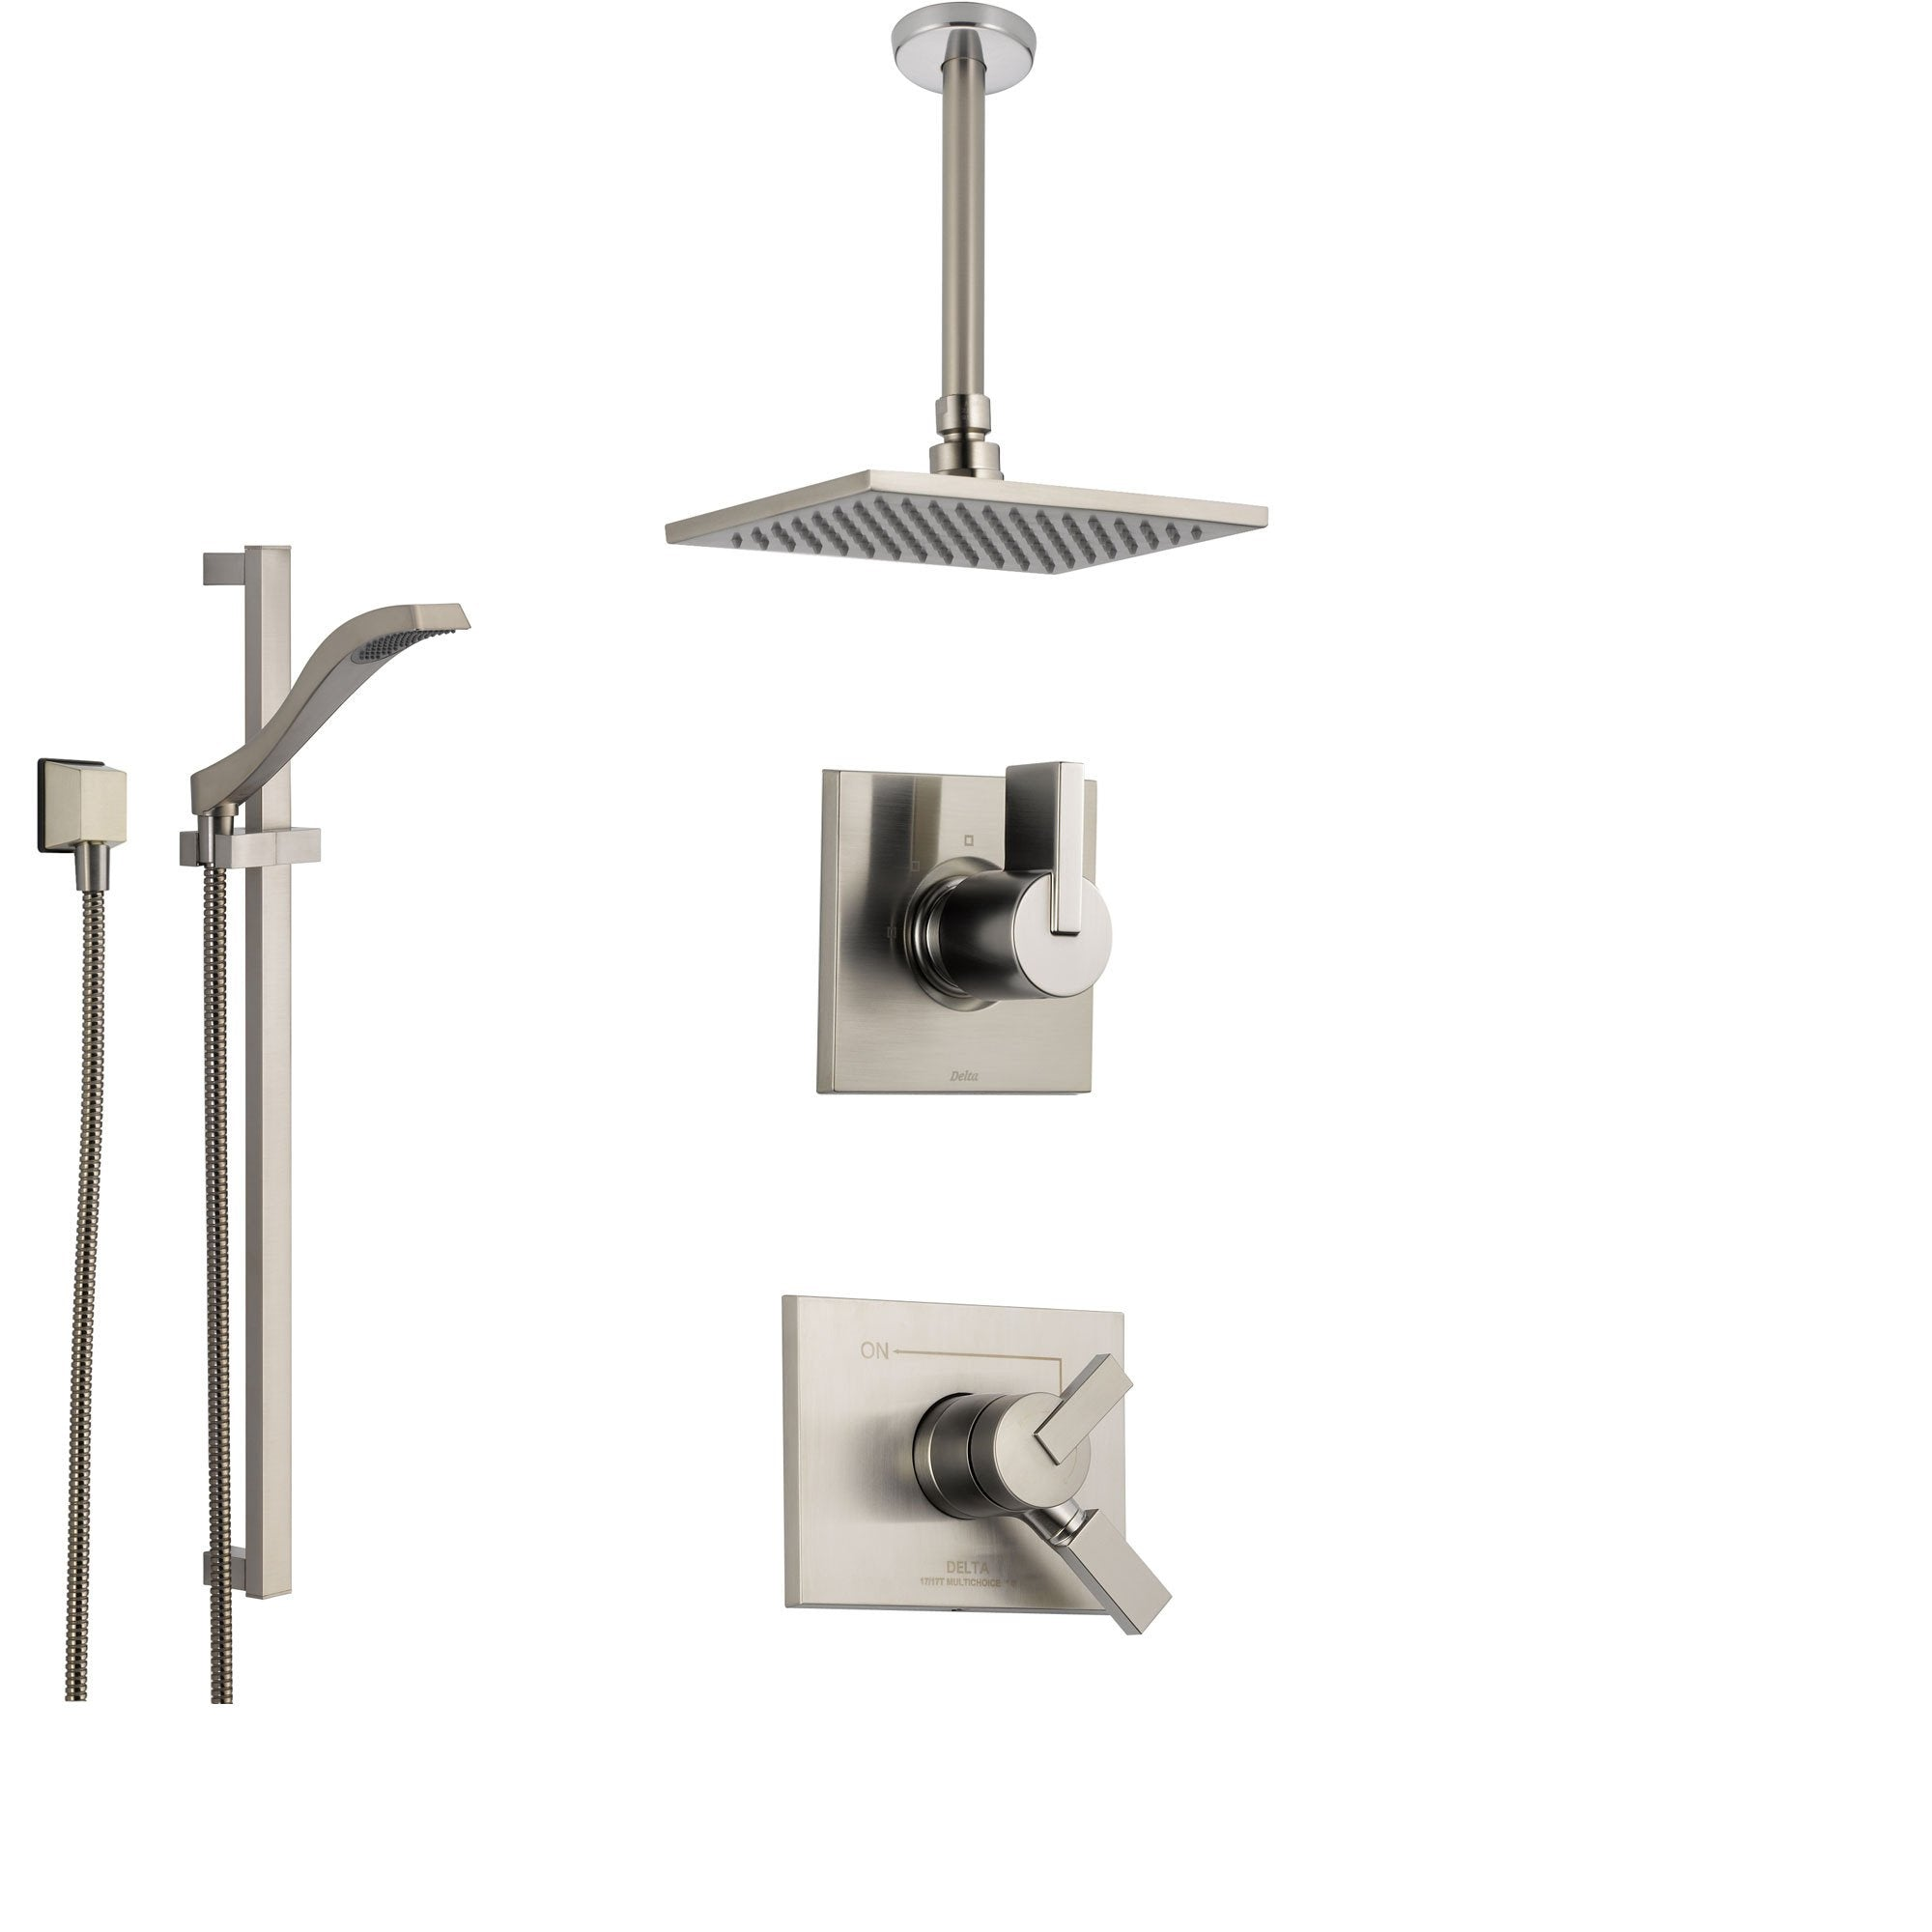 Delta Vero Stainless Steel Shower System with Dual Control Shower Handle, 3-setting Diverter, Large Square Ceiling Mount Showerhead, and Handheld Shower SS175383SS